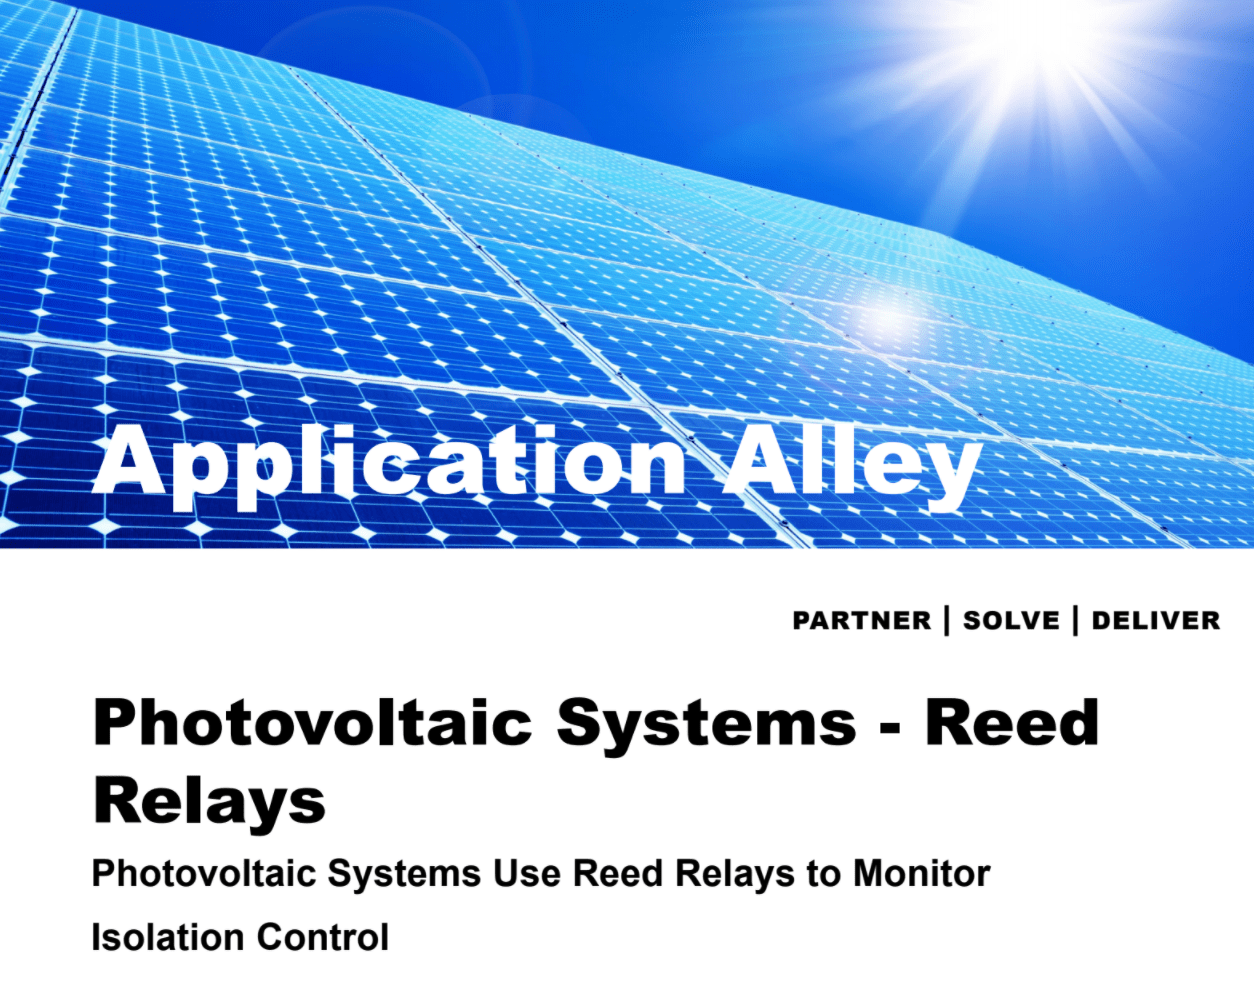 Application Alley: Photovoltaic Systems